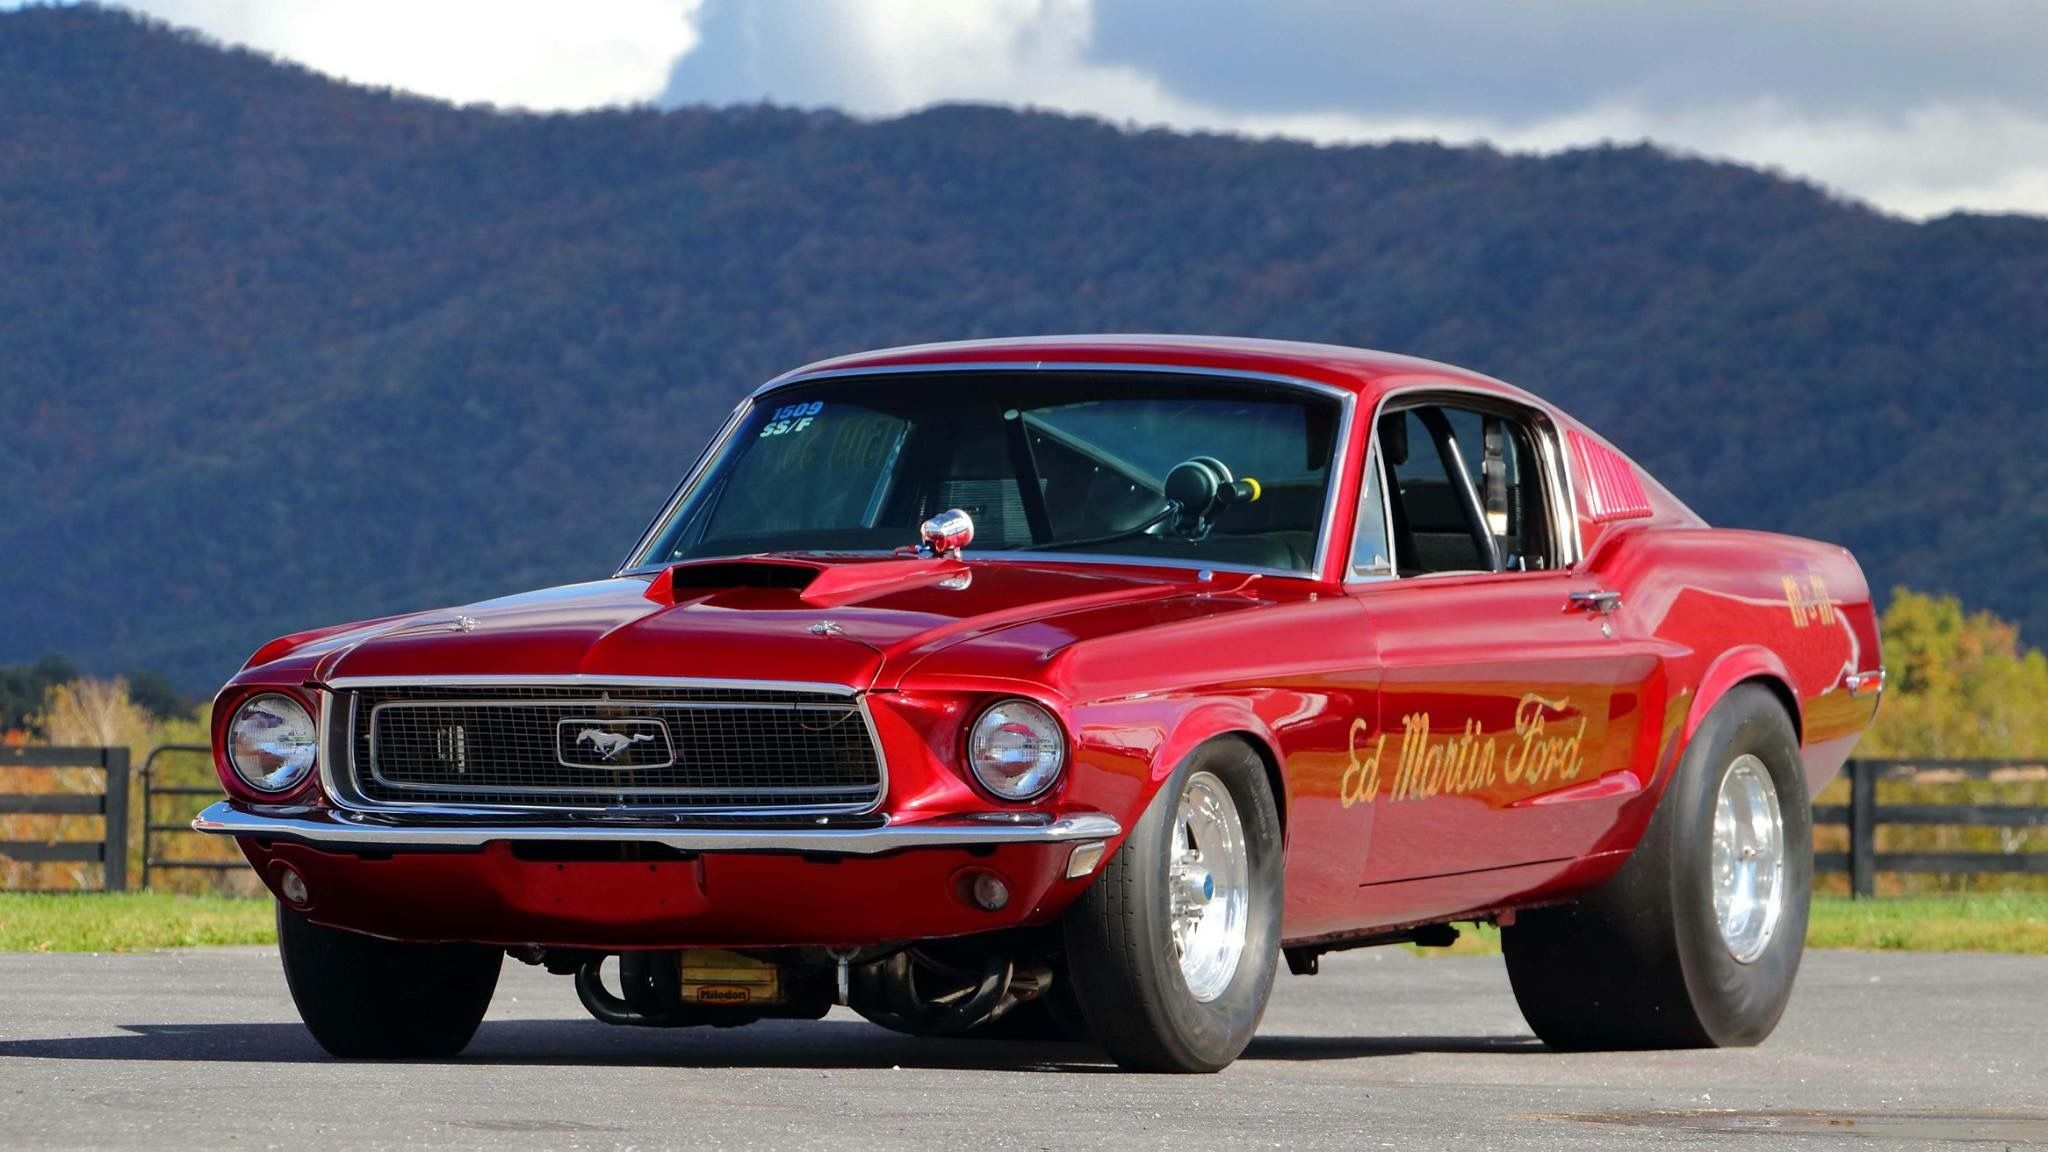 Super Stock Mustang Mustang Cars Ford Mustang Muscle Cars